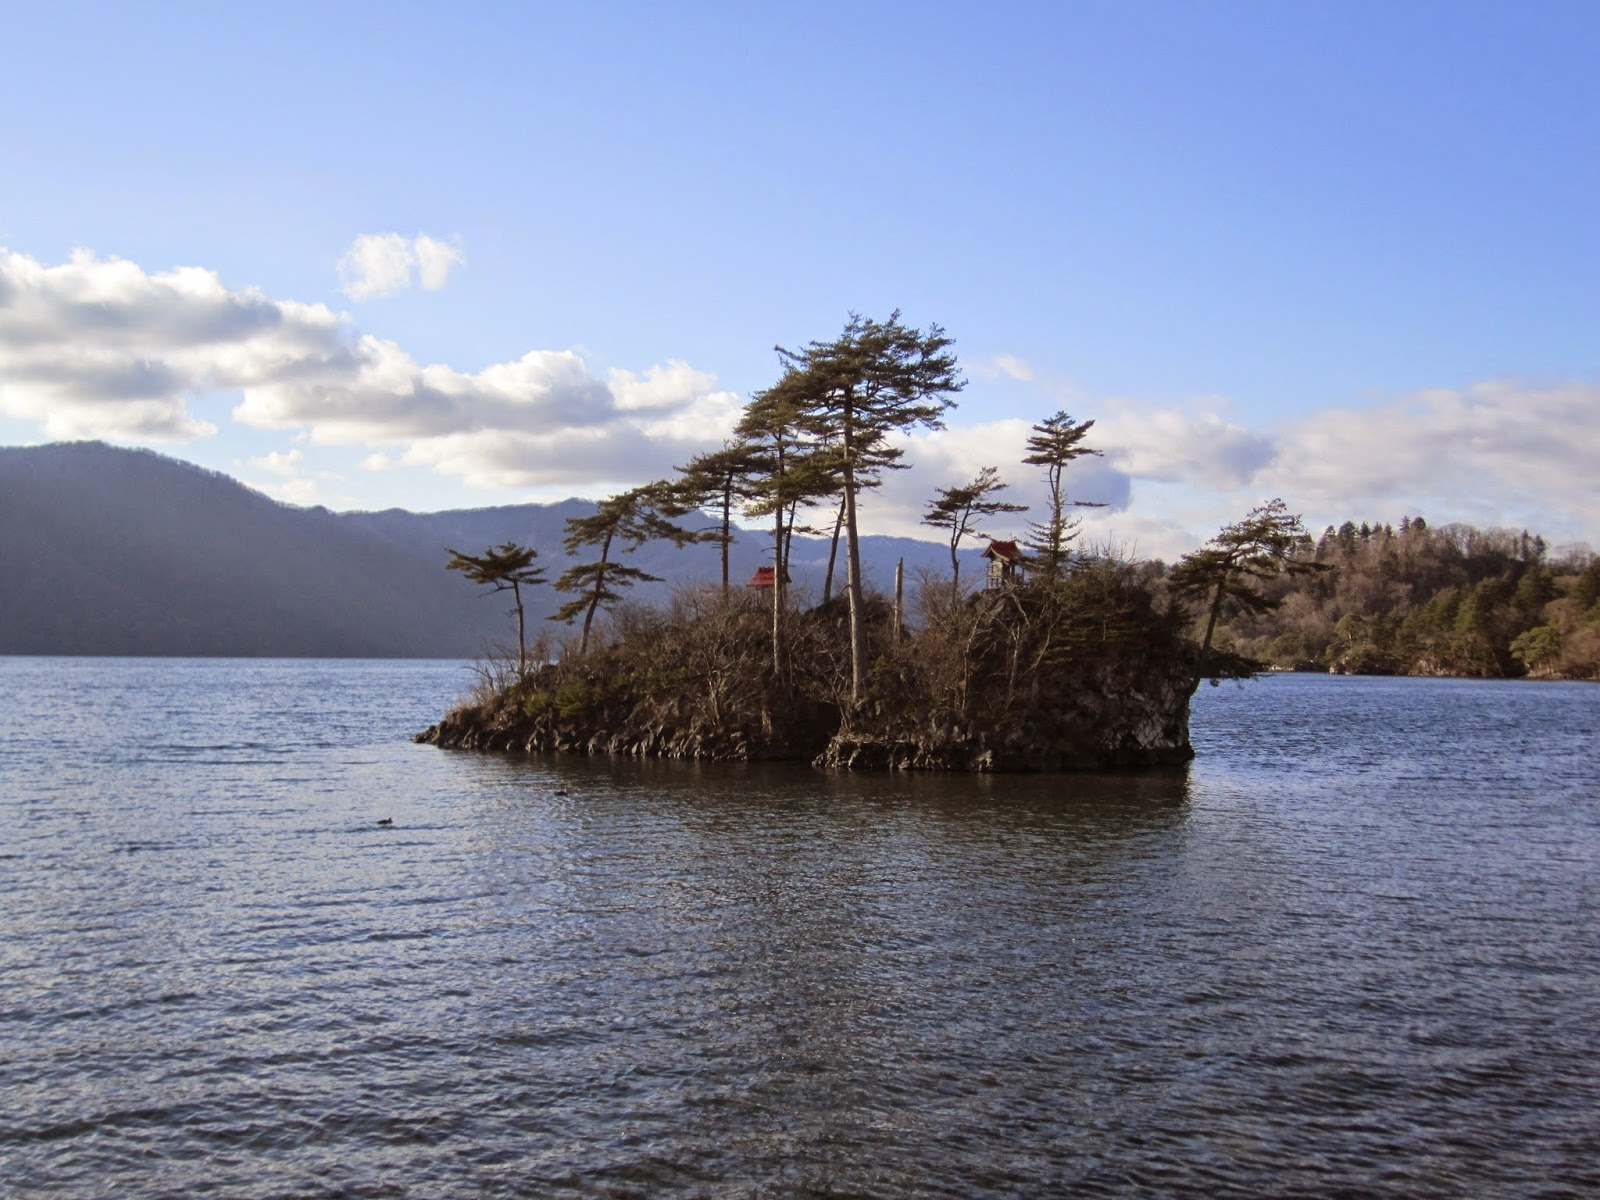 Lake Towada Towadako 十和田湖